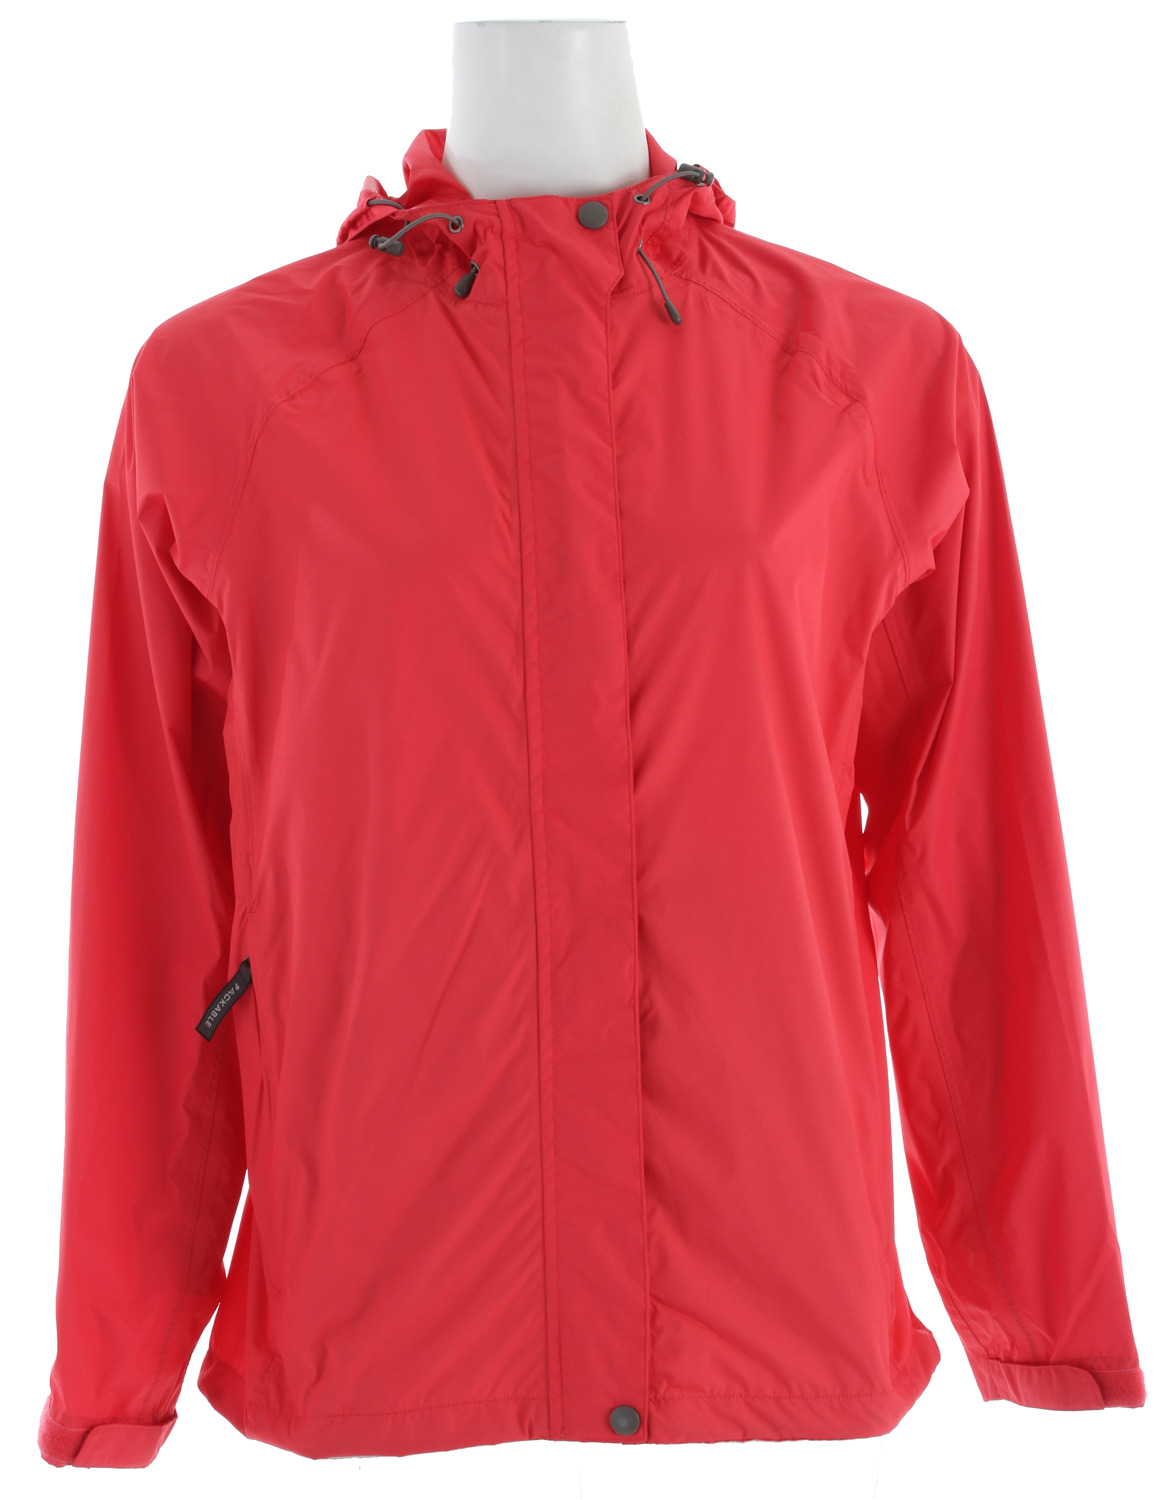 "Camp and Hike The Trabagon Jacket gives heavy waterproof protection against the elements using the lightest fabric. Throw it on between errands or for hiking. Tuck this jacket into your pack or purse and hardly know its there.Key Features of the White Sierra Trabagon Jacket: 100% polyester micro rip stop woven Waterproof/breathable fabric Fully seam taped Back yoke with mesh venting Packable – stows in front pocket One hand quick draw hem Reflective logo Adjustable cuffs Center back length: 27"" - $39.95"